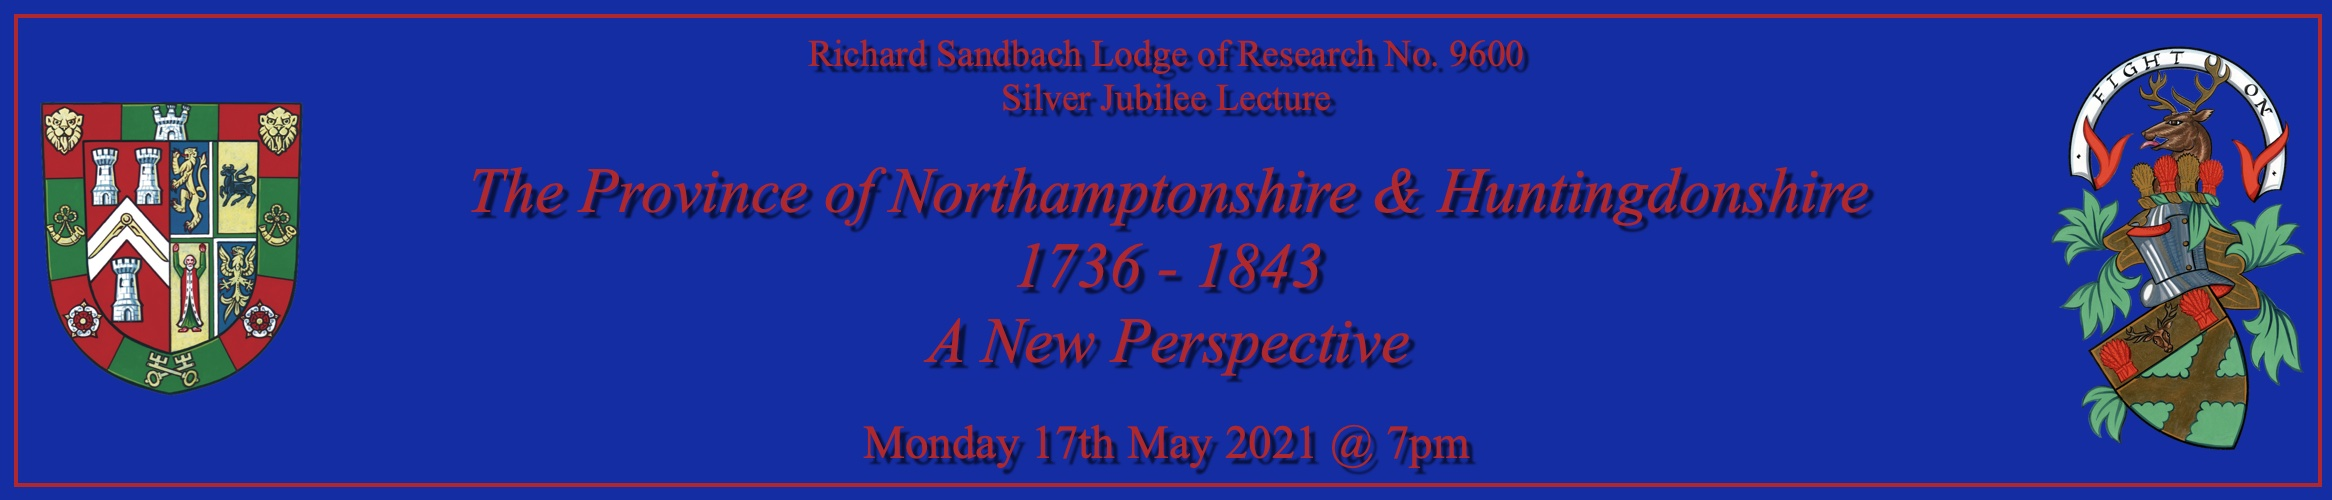 21 05 03 rslor 17th may 2021 advertisement banner